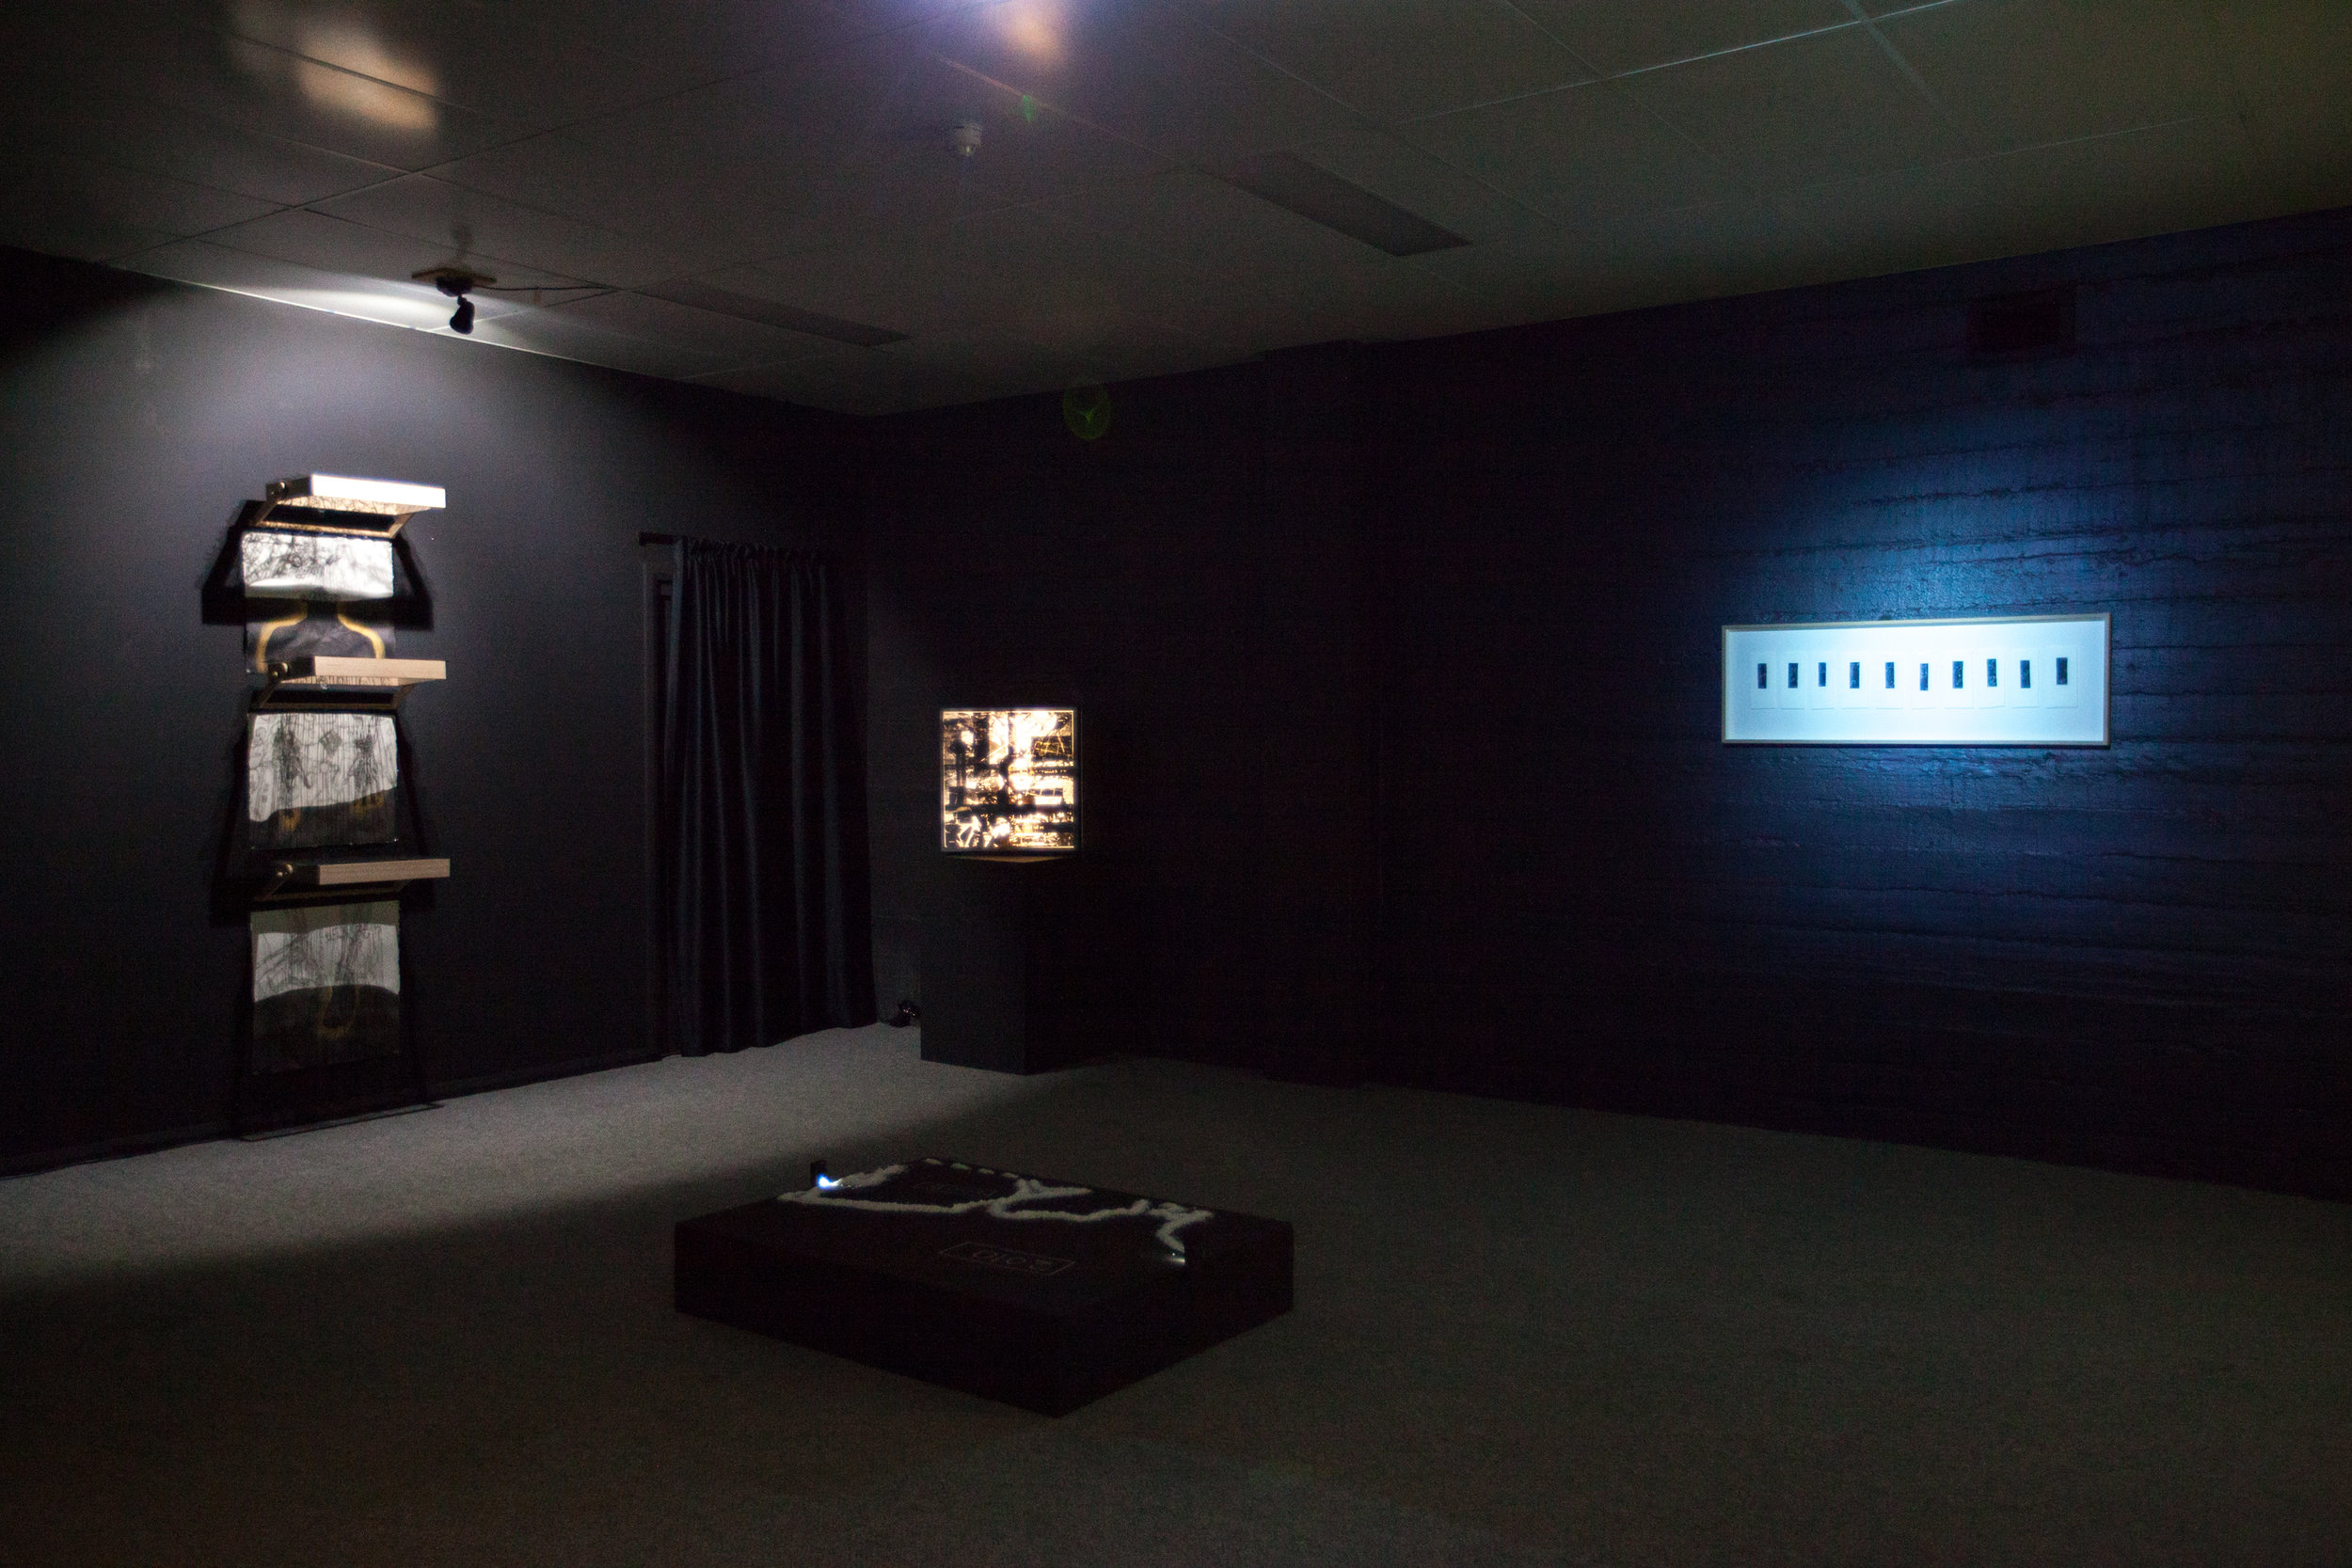 Sawtooth ARI, installation view. Photograph by Mel de Rutyer.